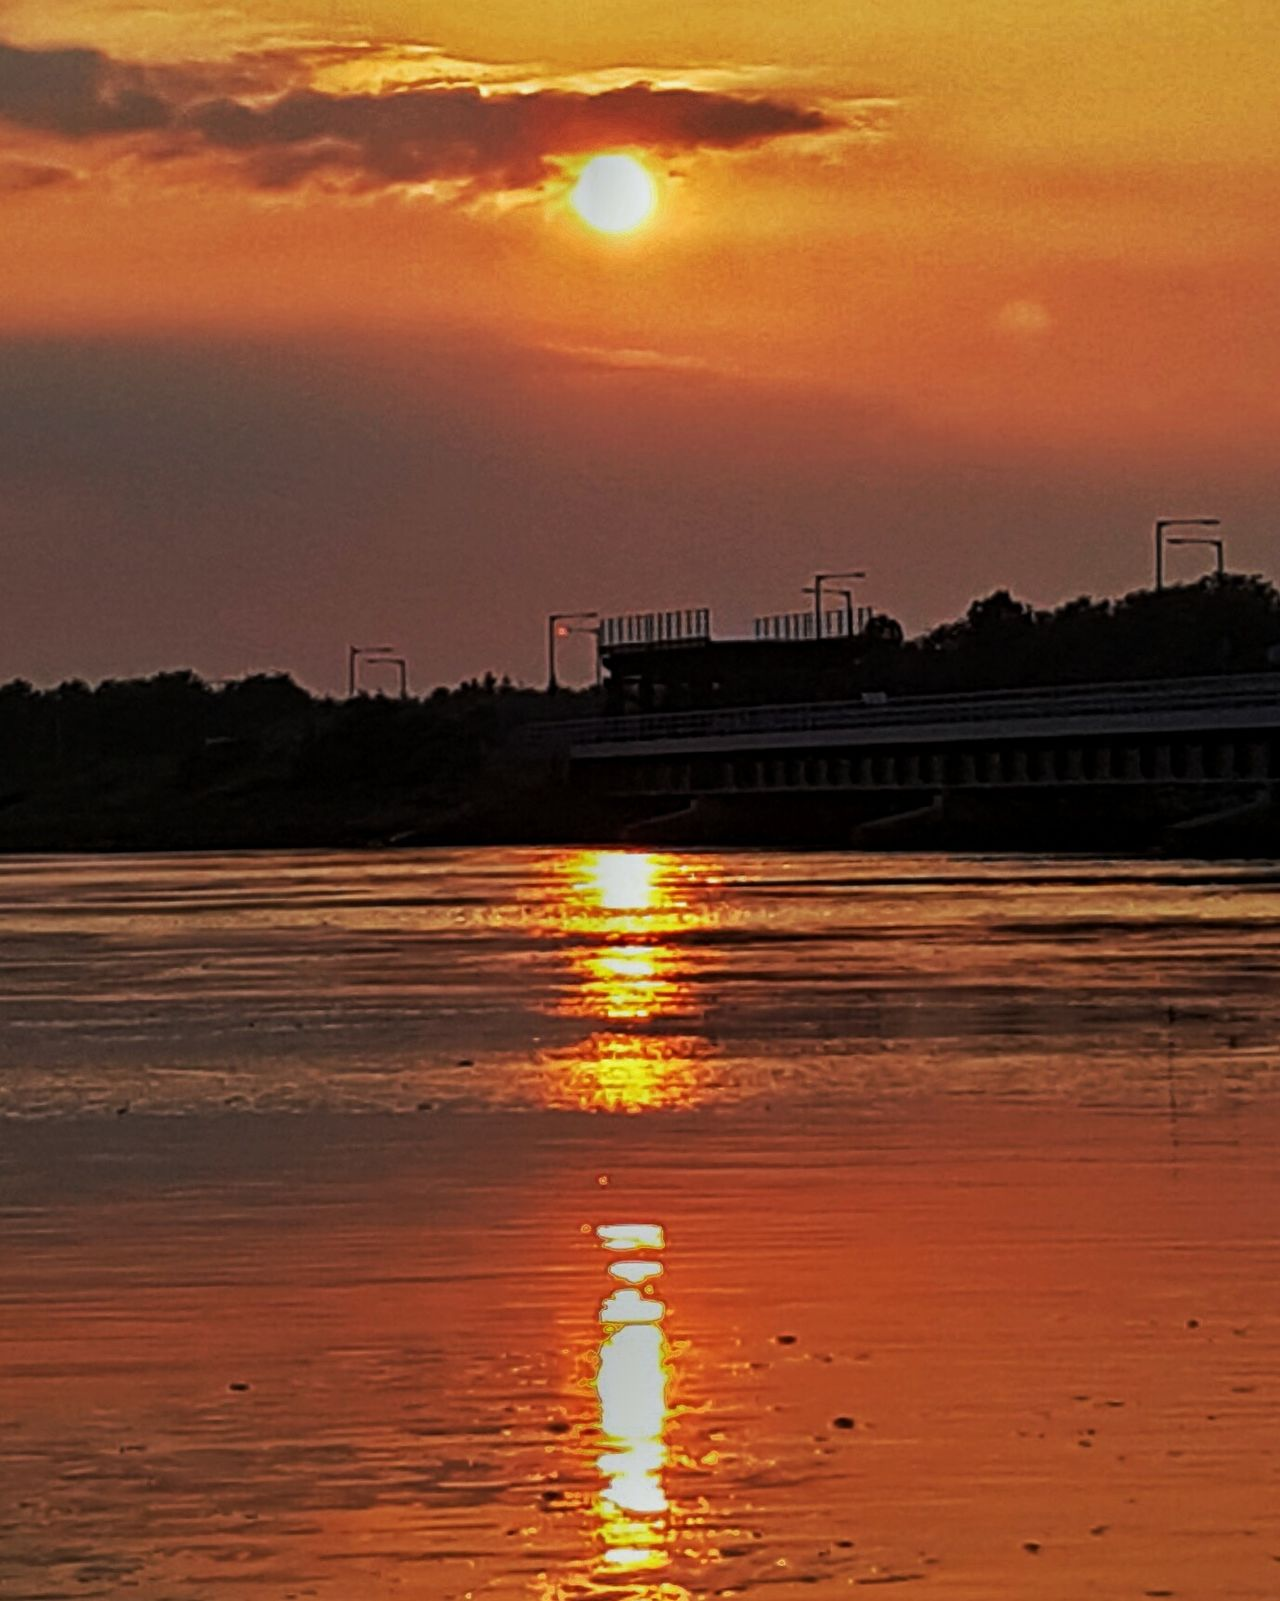 Sunset Sun Water Reflection Scenics Orange Color Silhouette Sky Cloud - Sky Tranquil Scene Beauty In Nature Idyllic Nature Tranquility Waterfront Non-urban Scene Sea Cloud Outdoors Romantic Sky